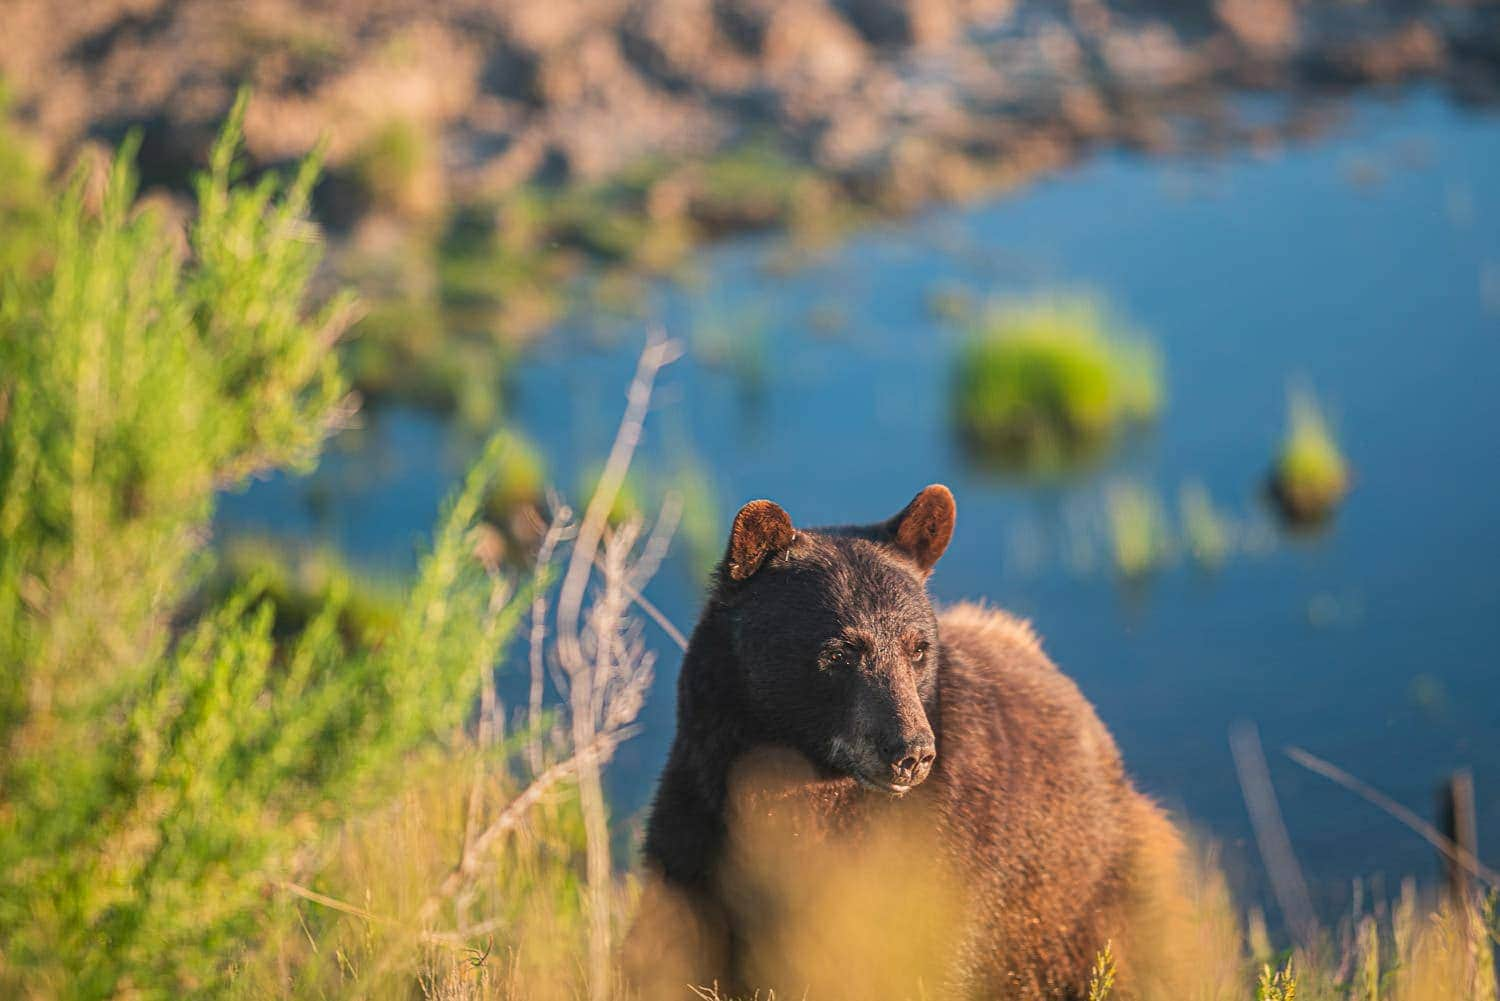 leave no trace to protect wildlife like this black bear near Crested Butte, Colorado